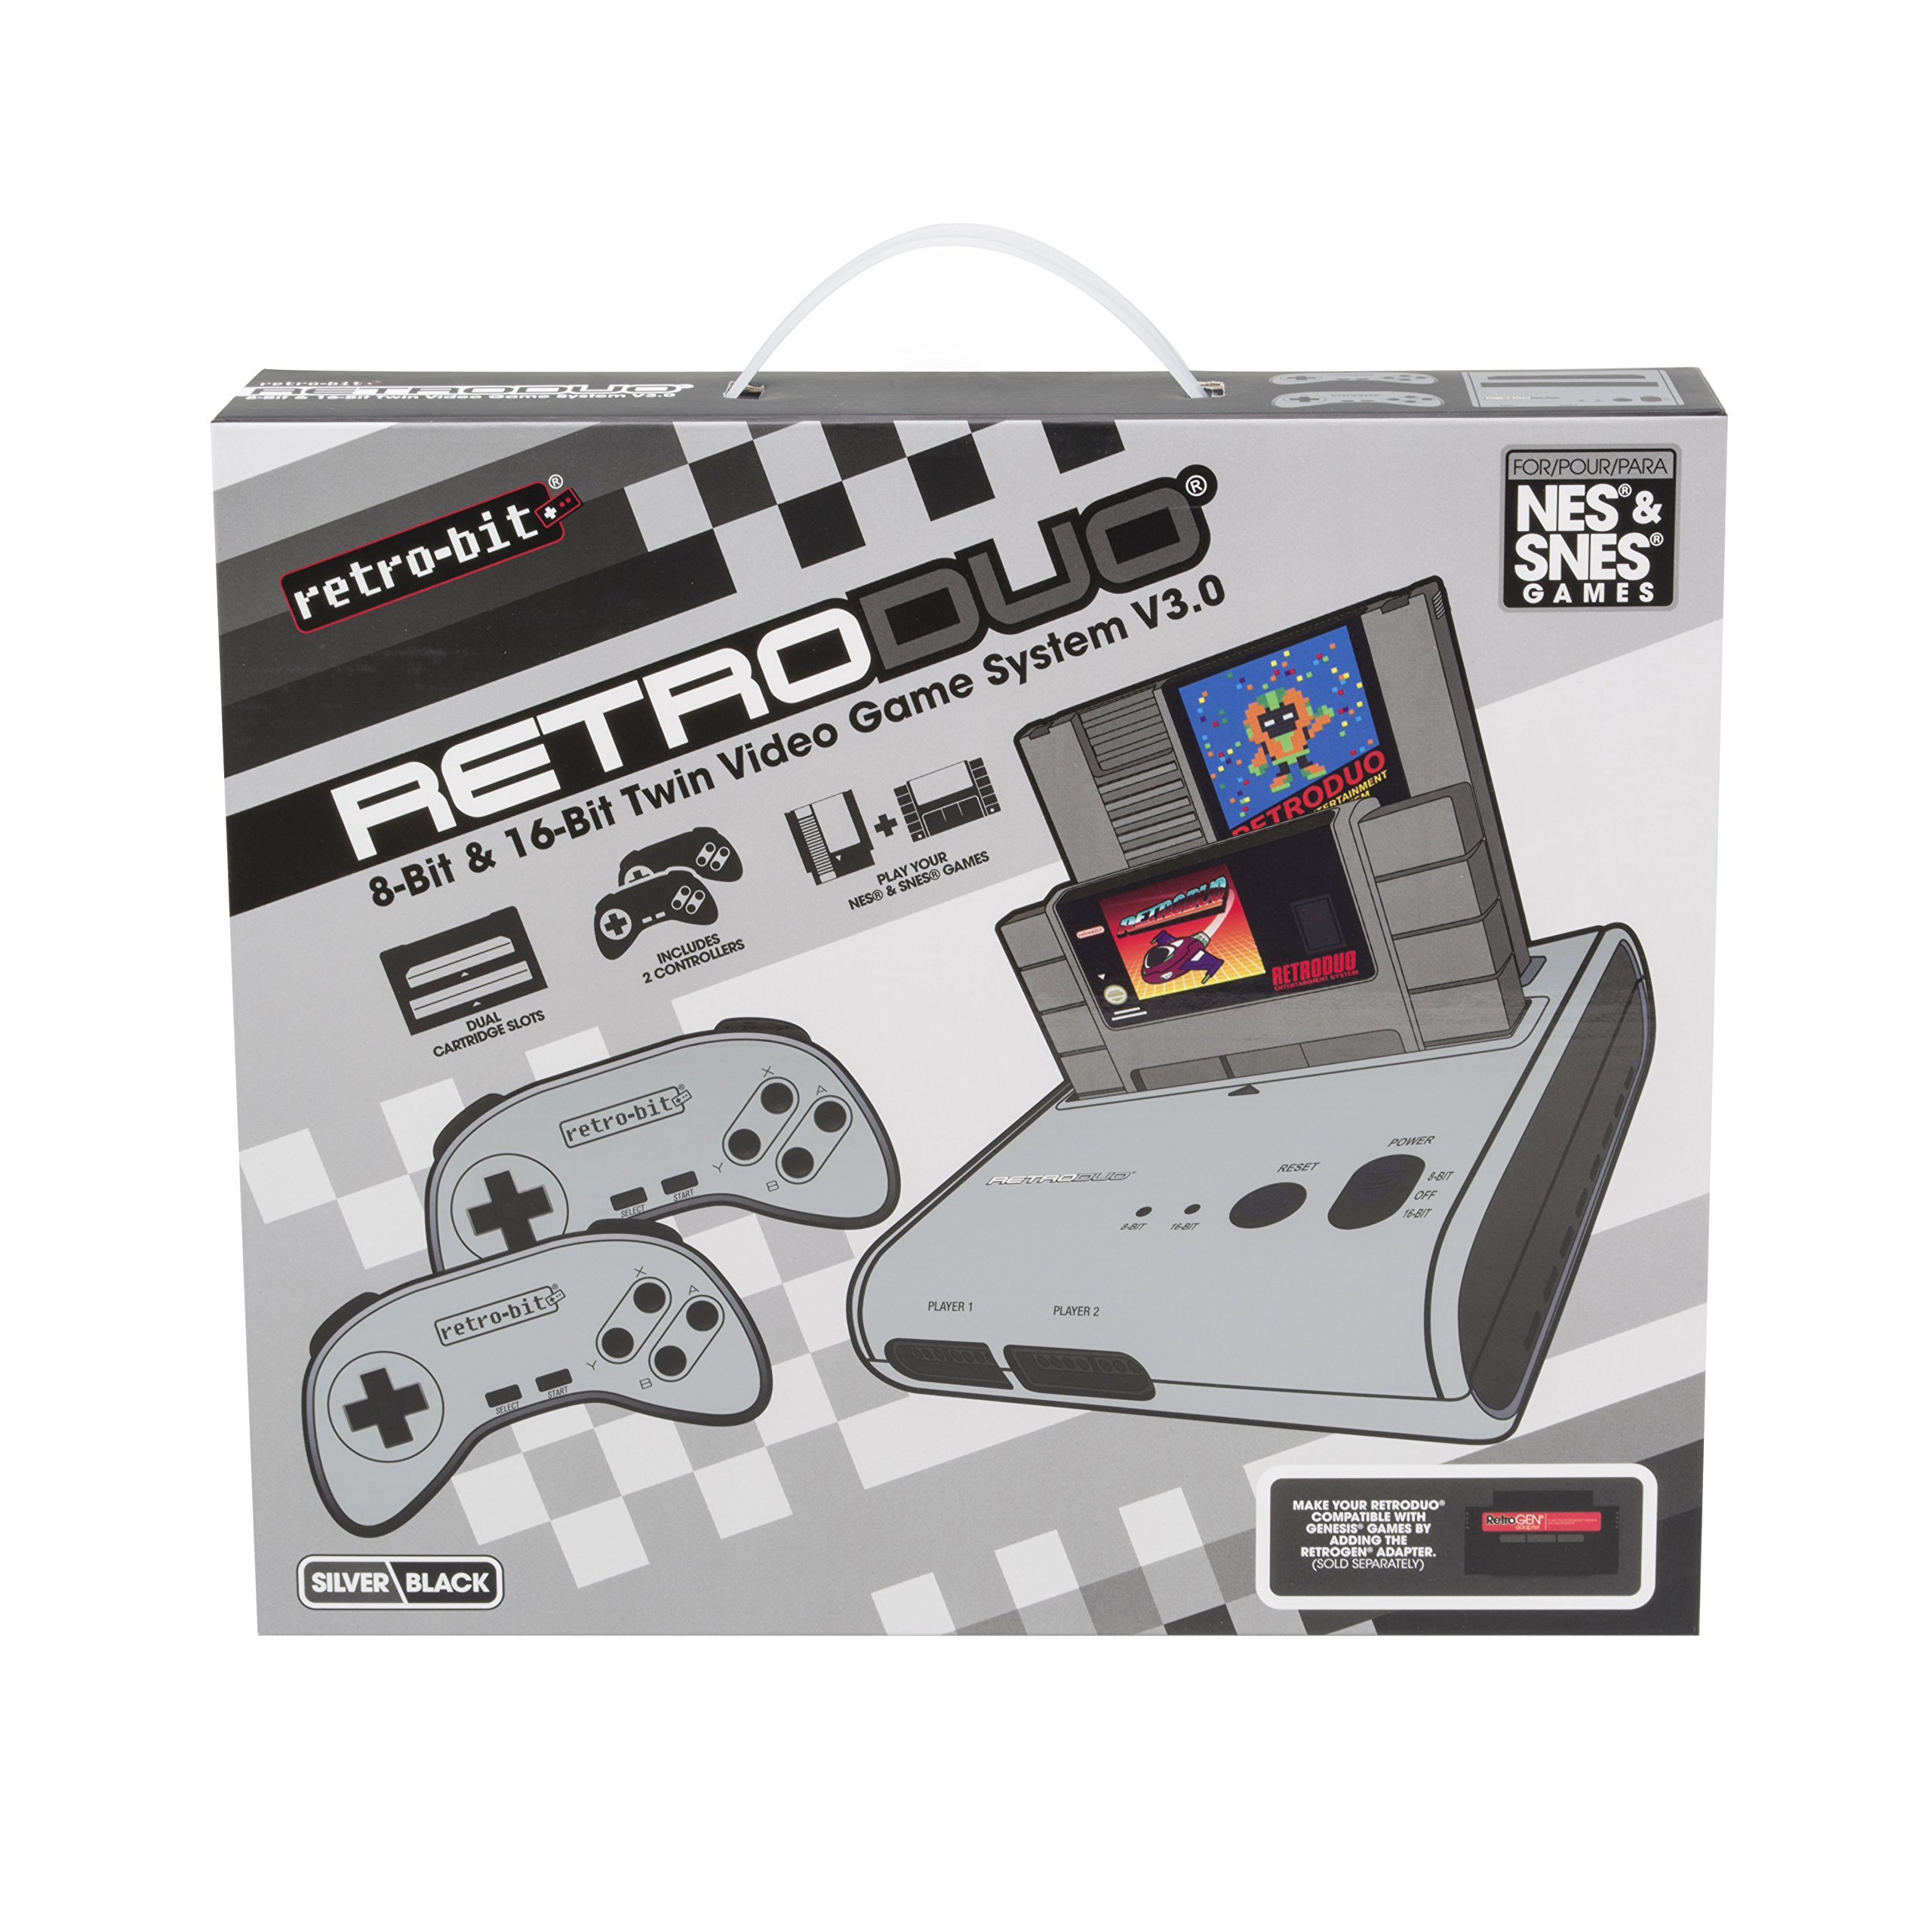 Retro-Bit Retro Duo Twin Video Game System, Silver/Black by Retro-Bit (Image #6)